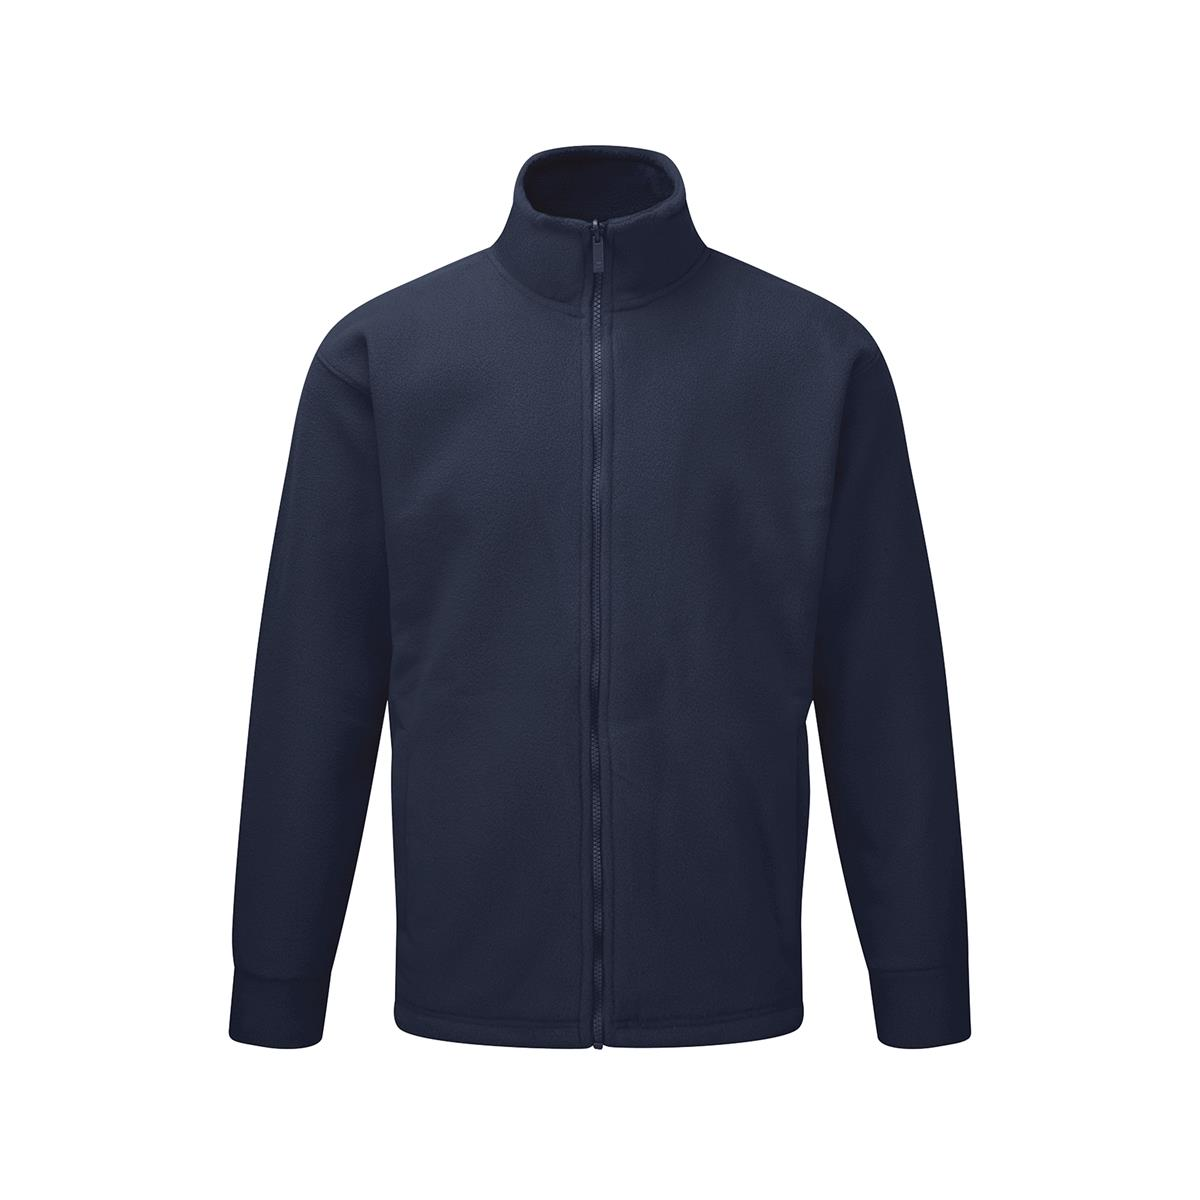 Image for Basic Fleece Jacket Elasticated Cuffs and Full Zip Front Extra Large Navy 1-3 Days Lead Time